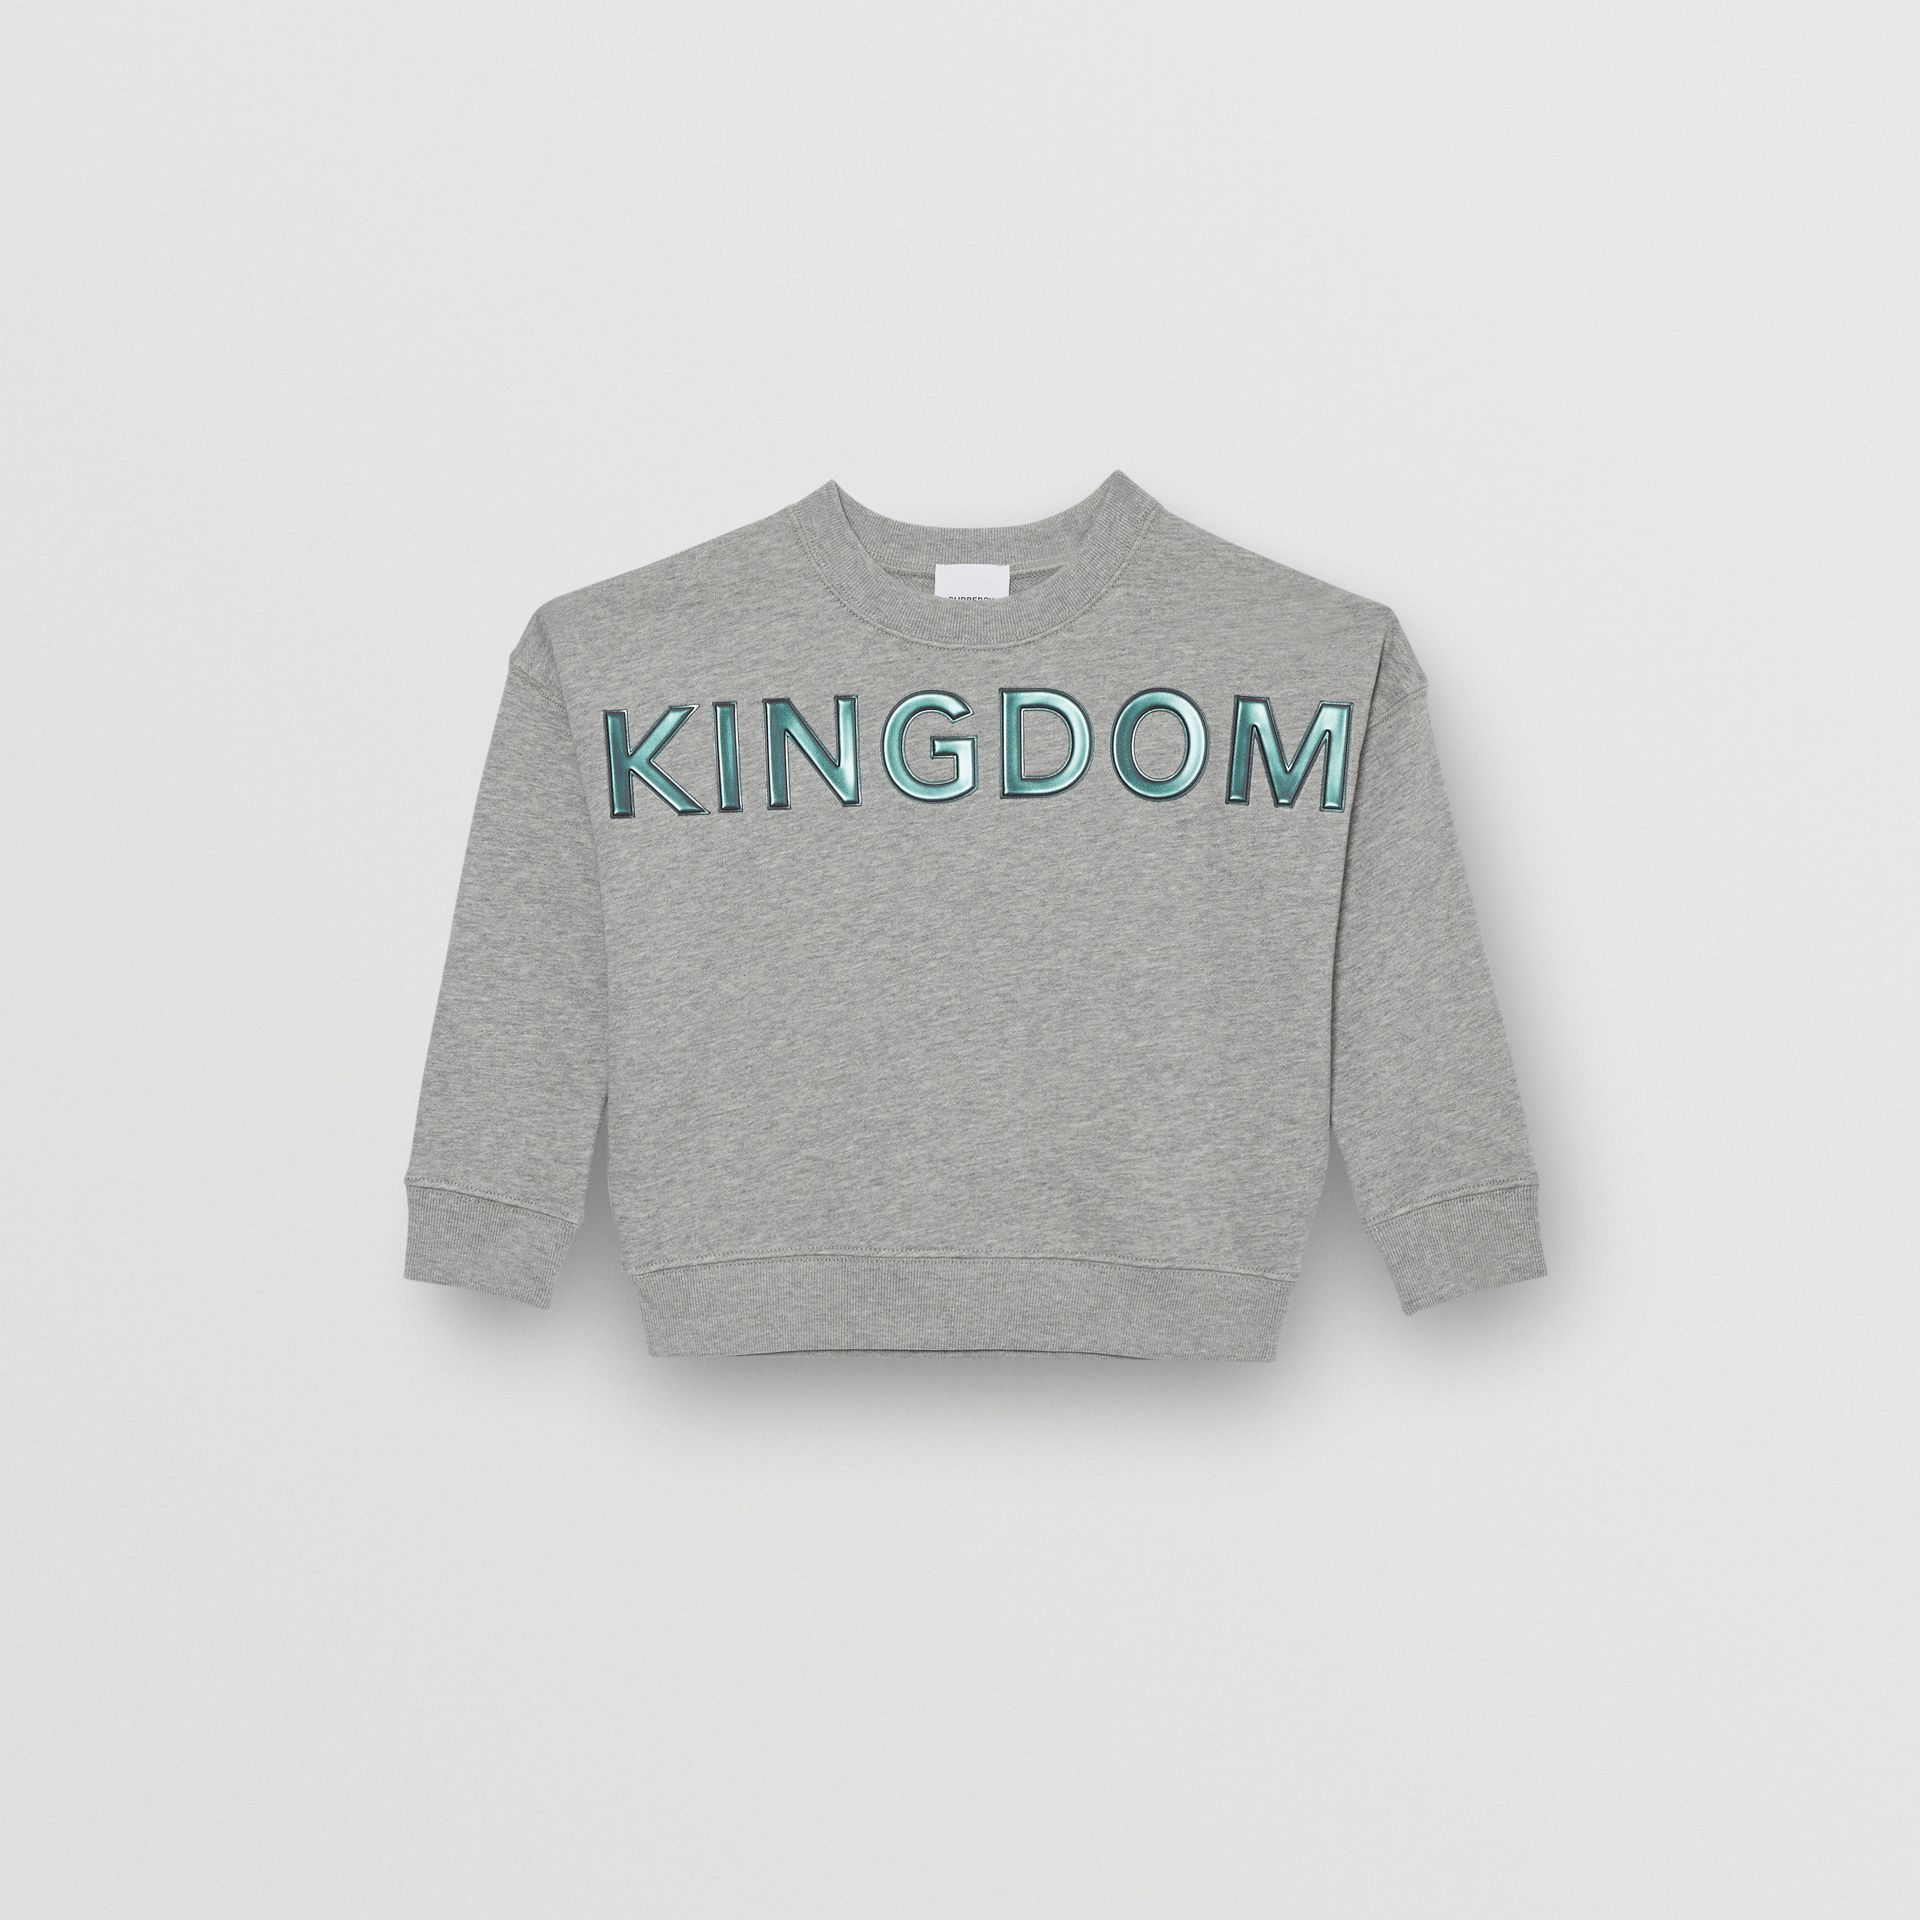 Kingdom Motif Cotton Sweatshirt in Grey Melange | Burberry - gallery image 0